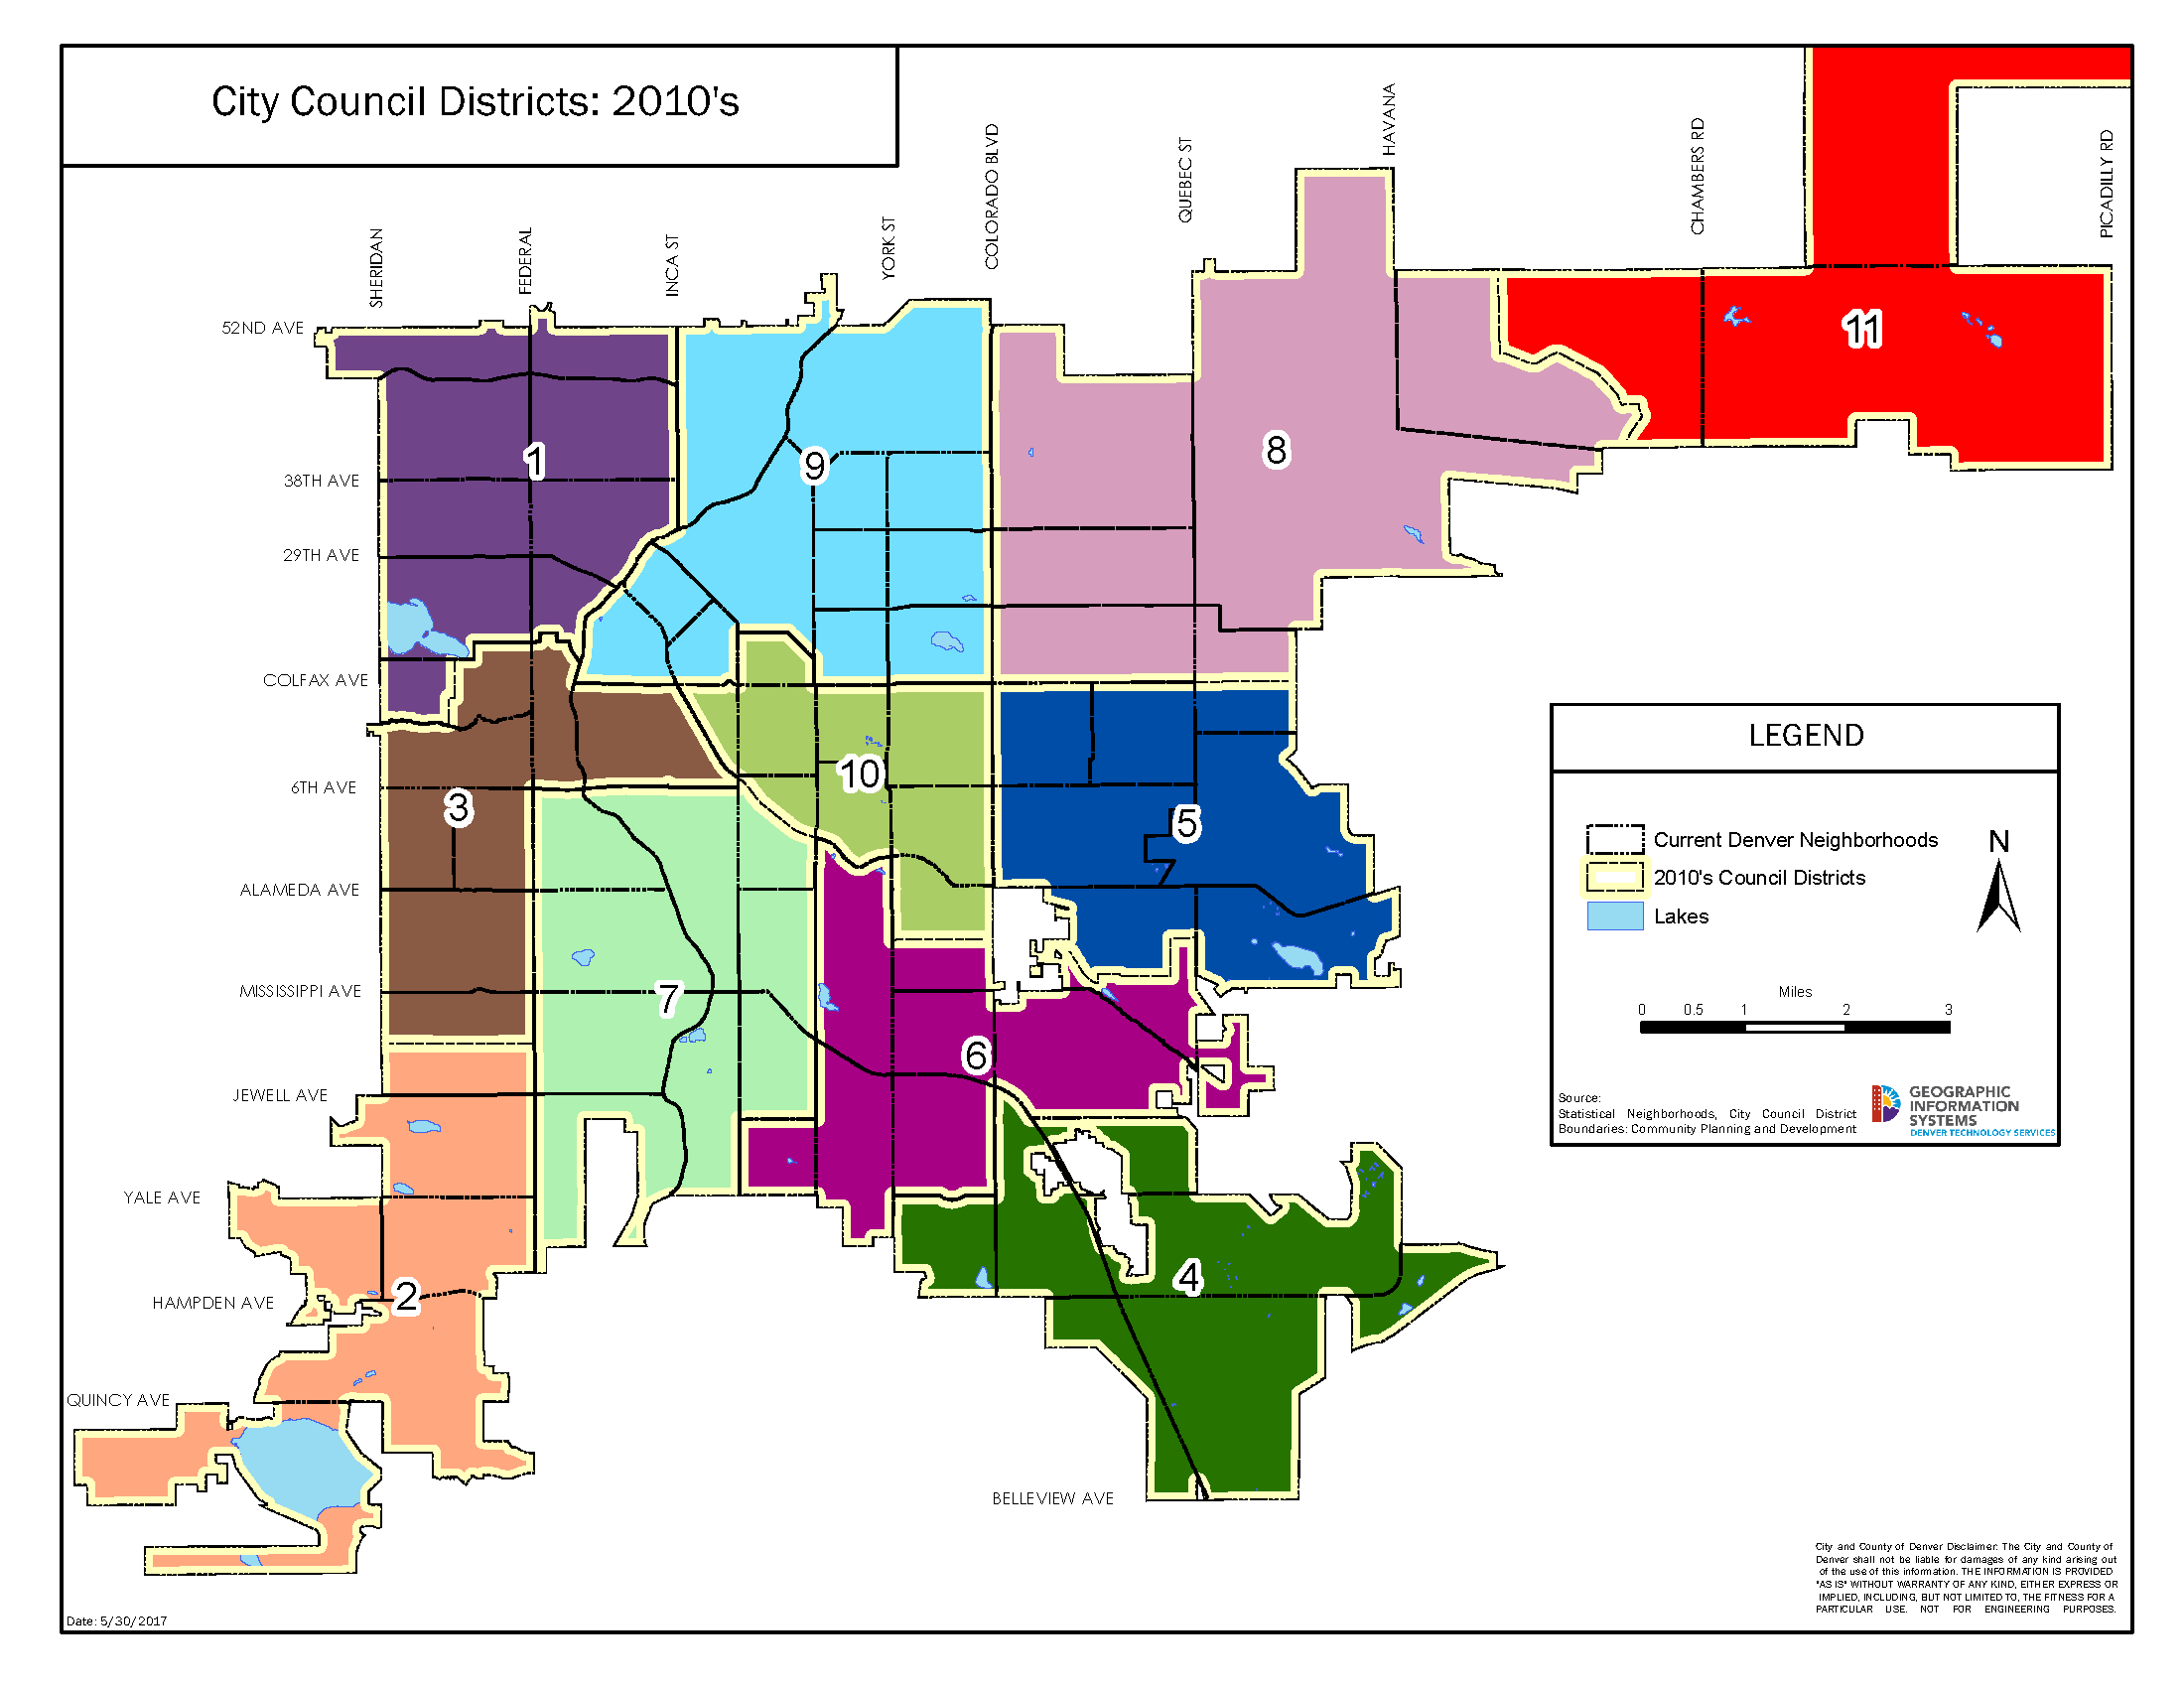 2010 Denver council districts map